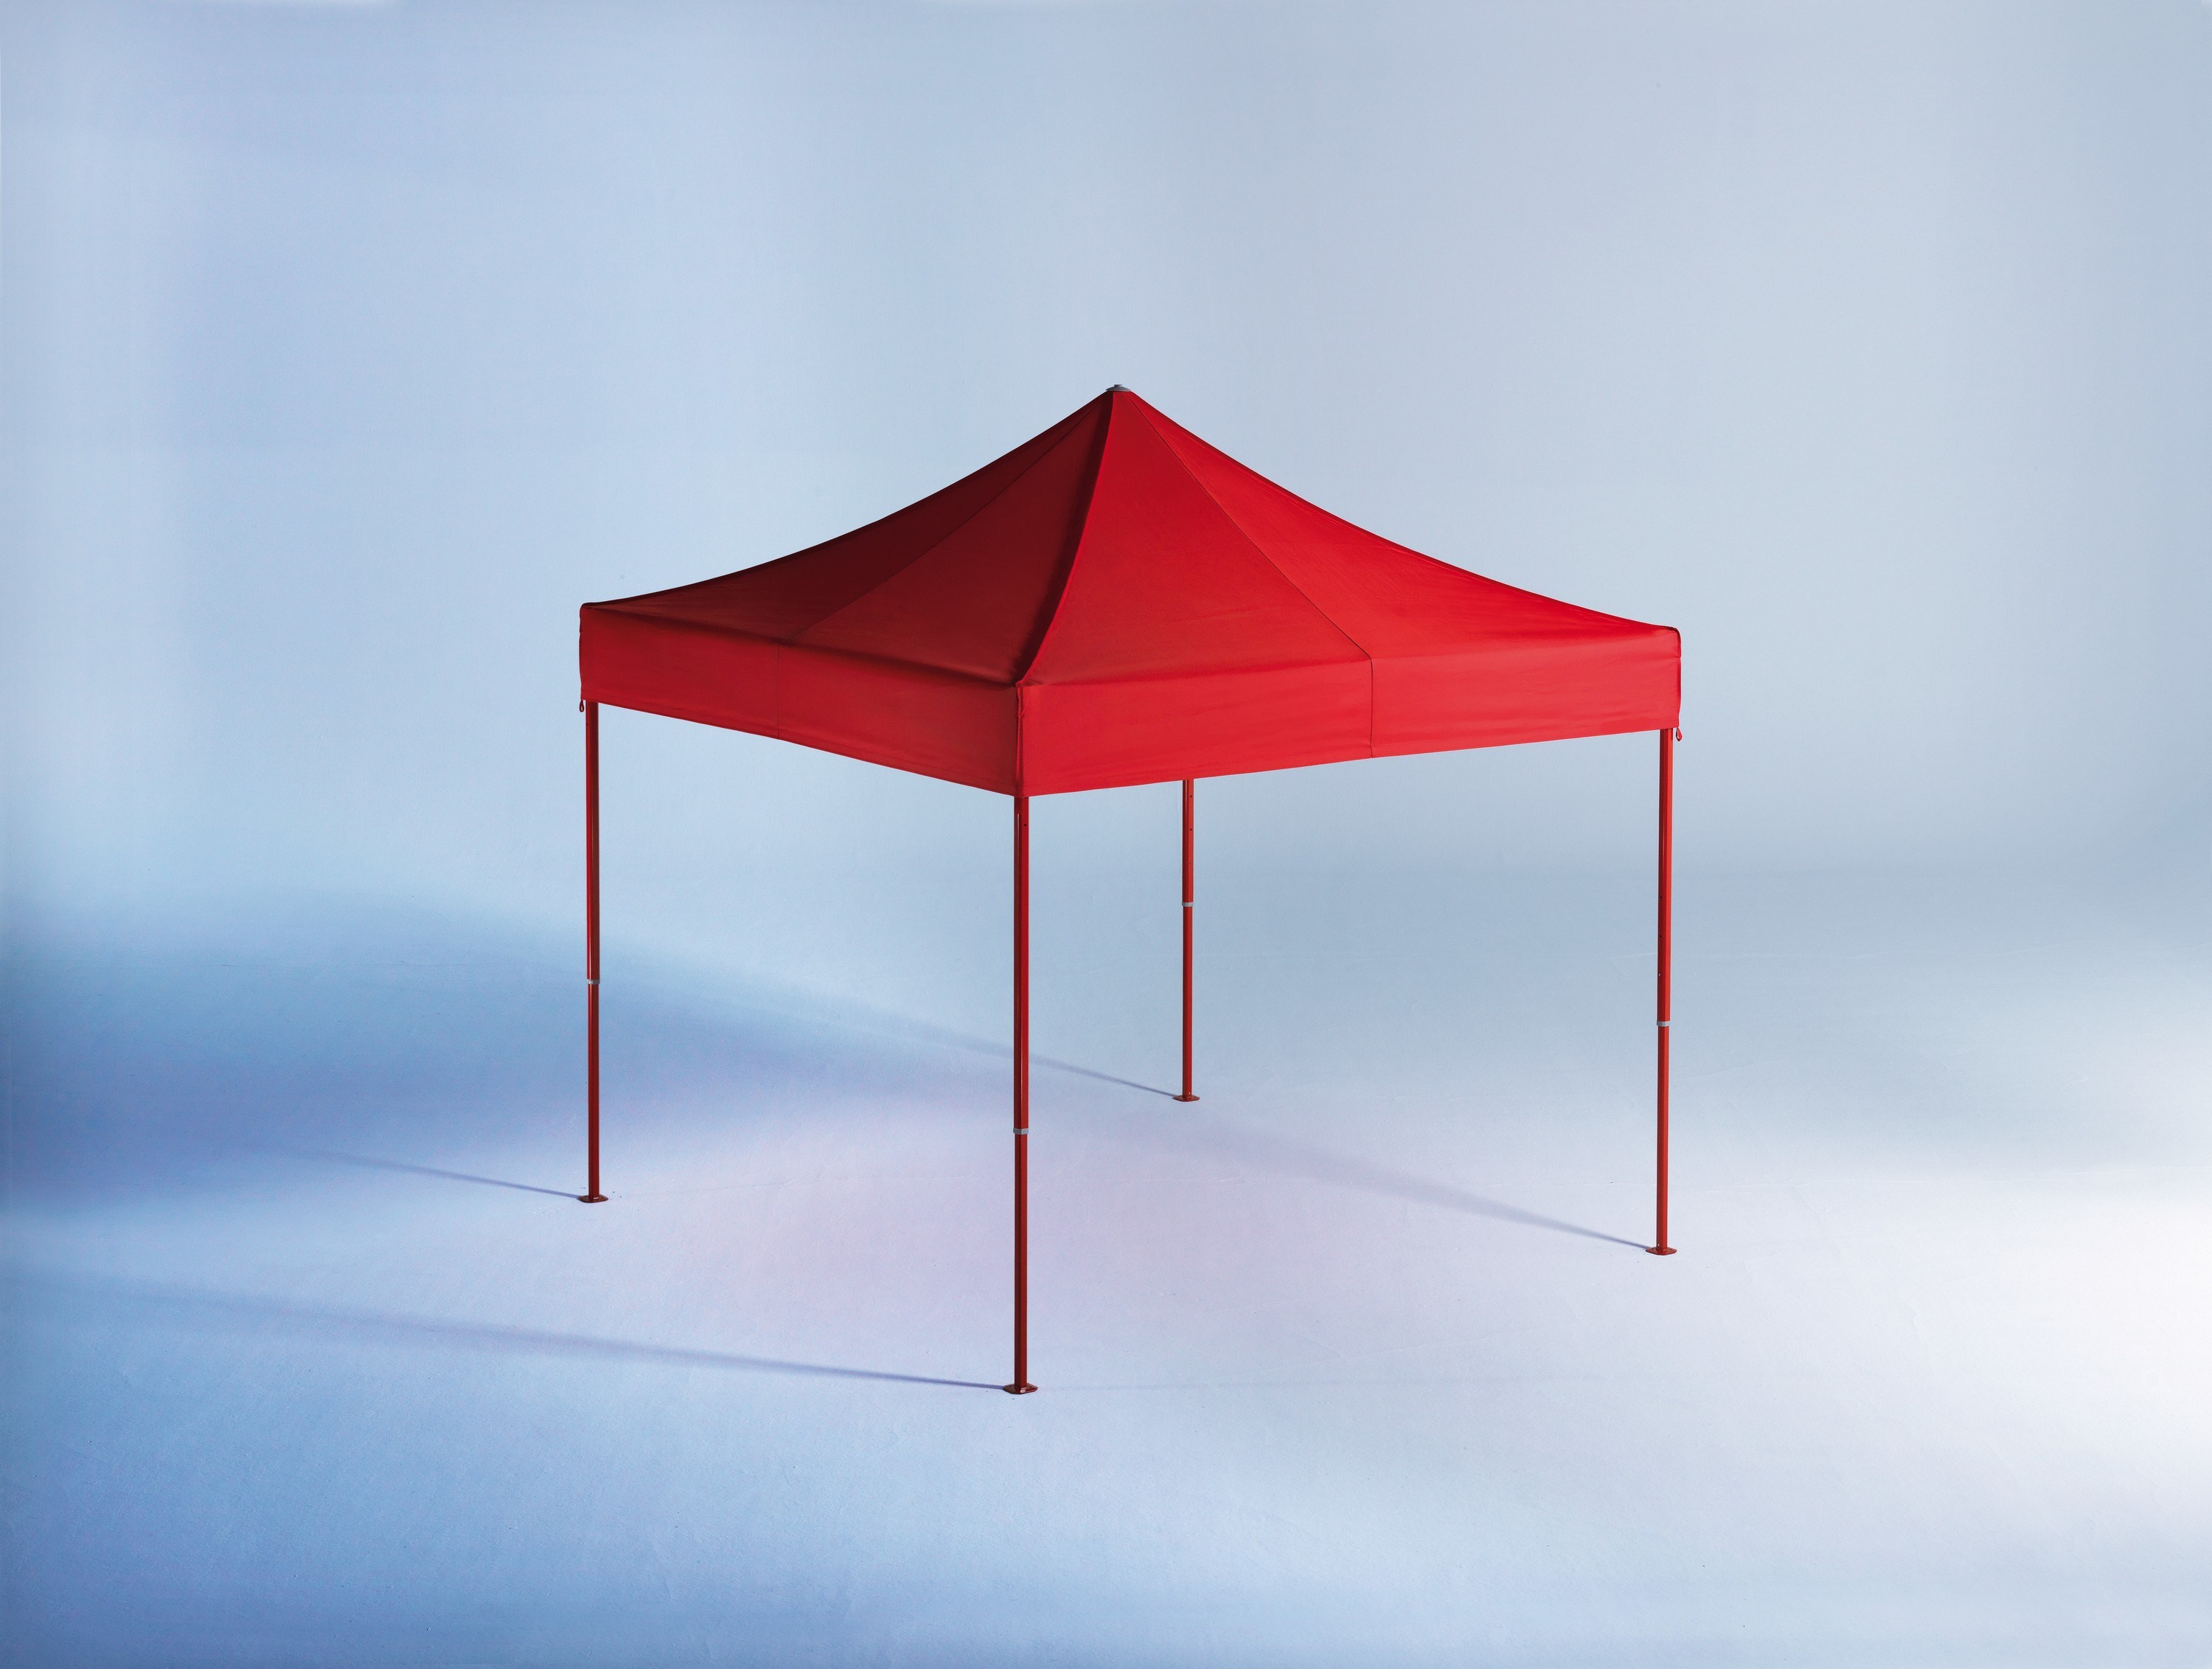 <p>Tents & Marquees – Folding Tents – Classic 3x3m Gazebo Coloured Frame.</p> <p> </p> <p>Available in other sizes.</p>